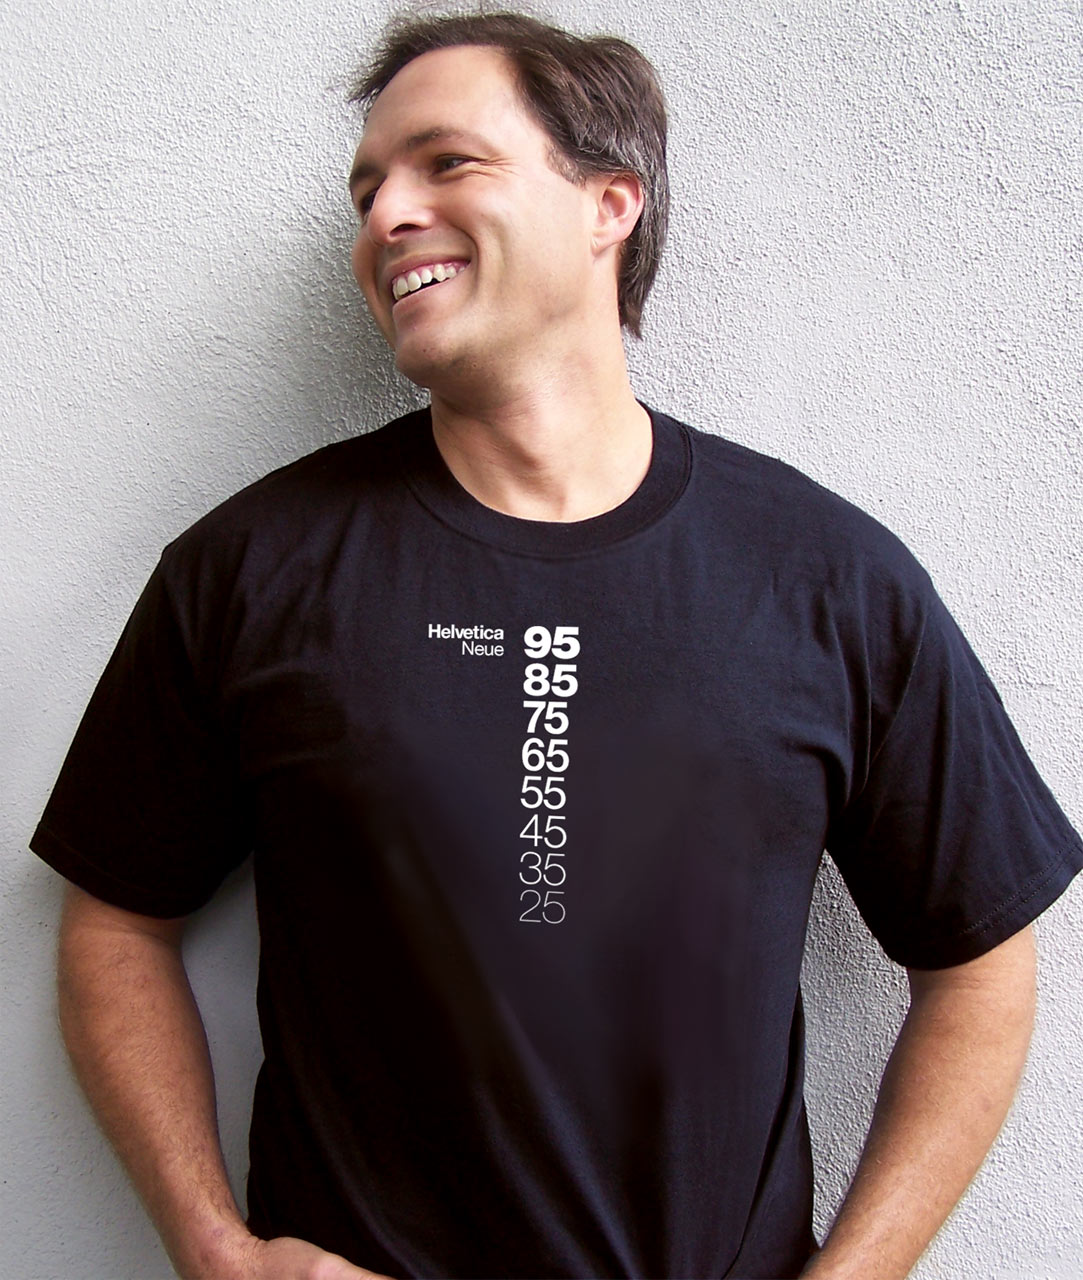 Patrick King Typography Shirts